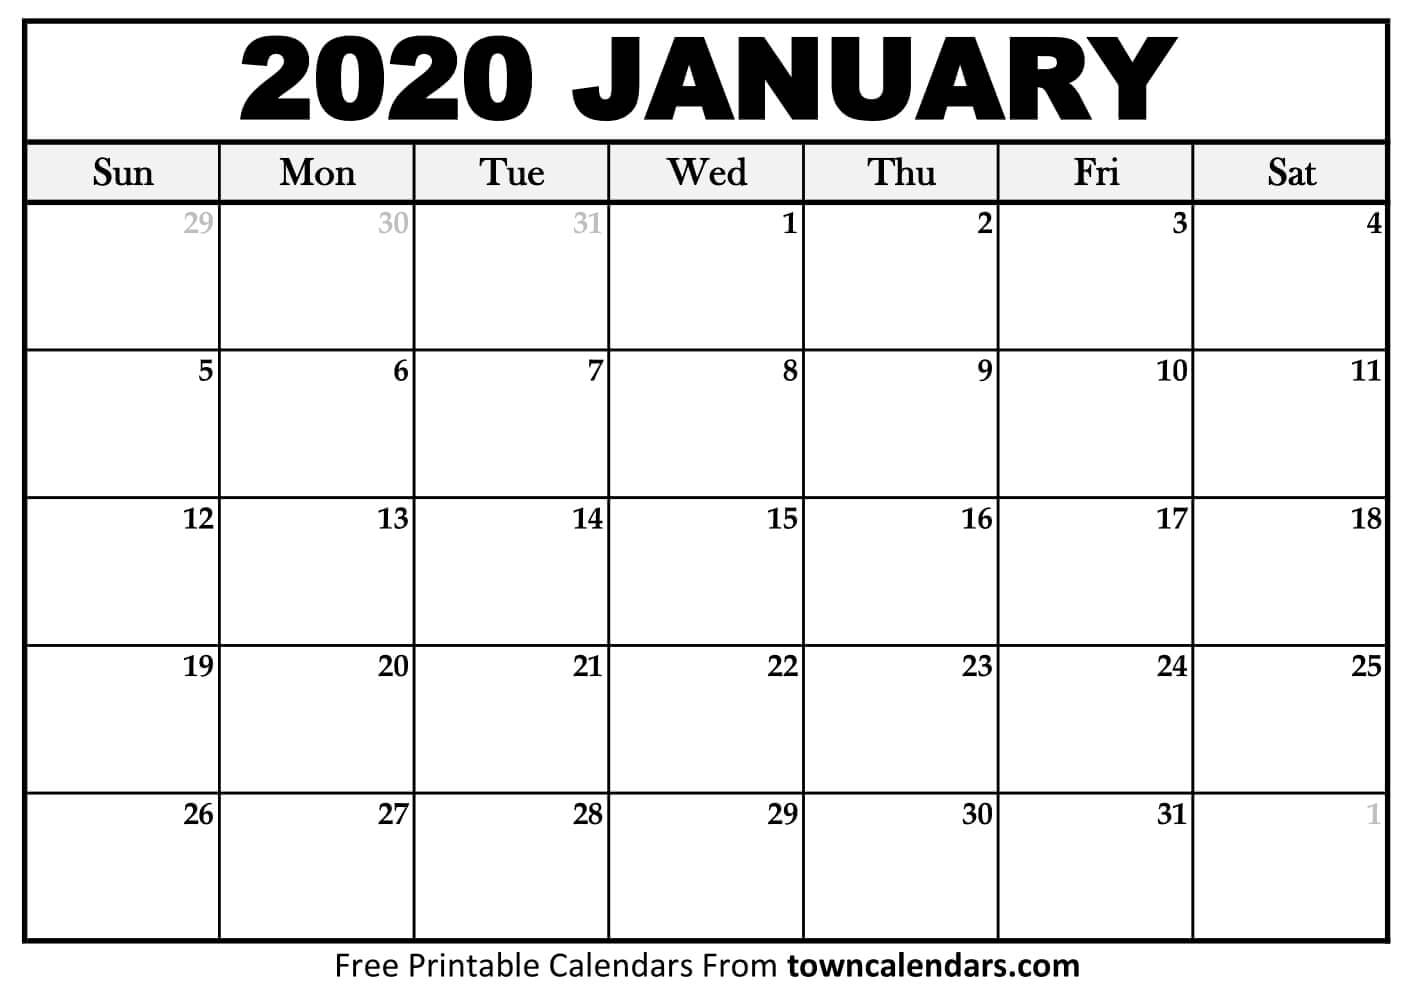 Printable January 2020 Calendar  Towncalendars with regard to January 2020 Printable Calendar